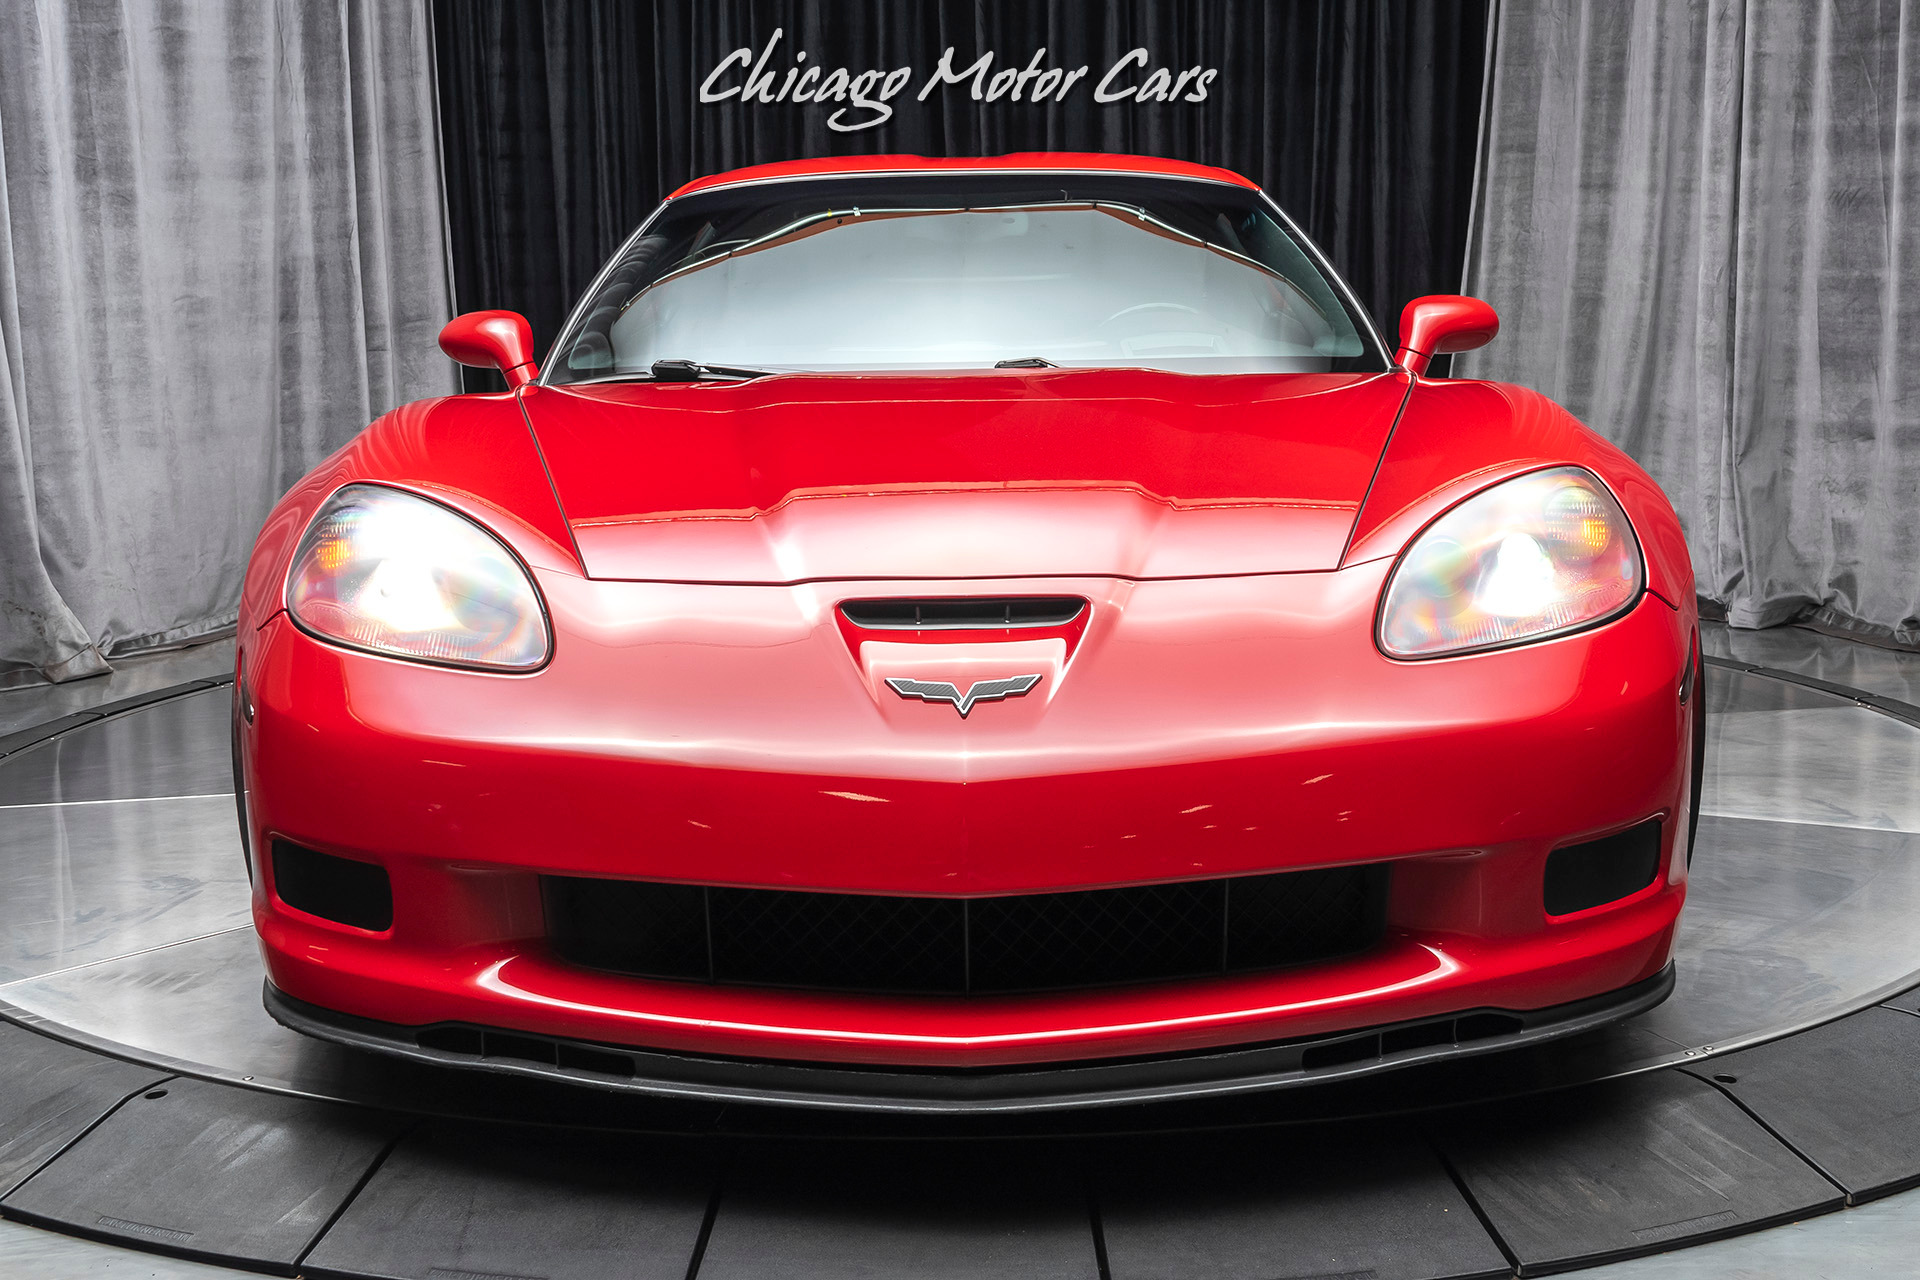 Used-2006-Chevrolet-Corvette-Z06-2LZ-BOSE--650HP-FORGED-BOTTOM-END